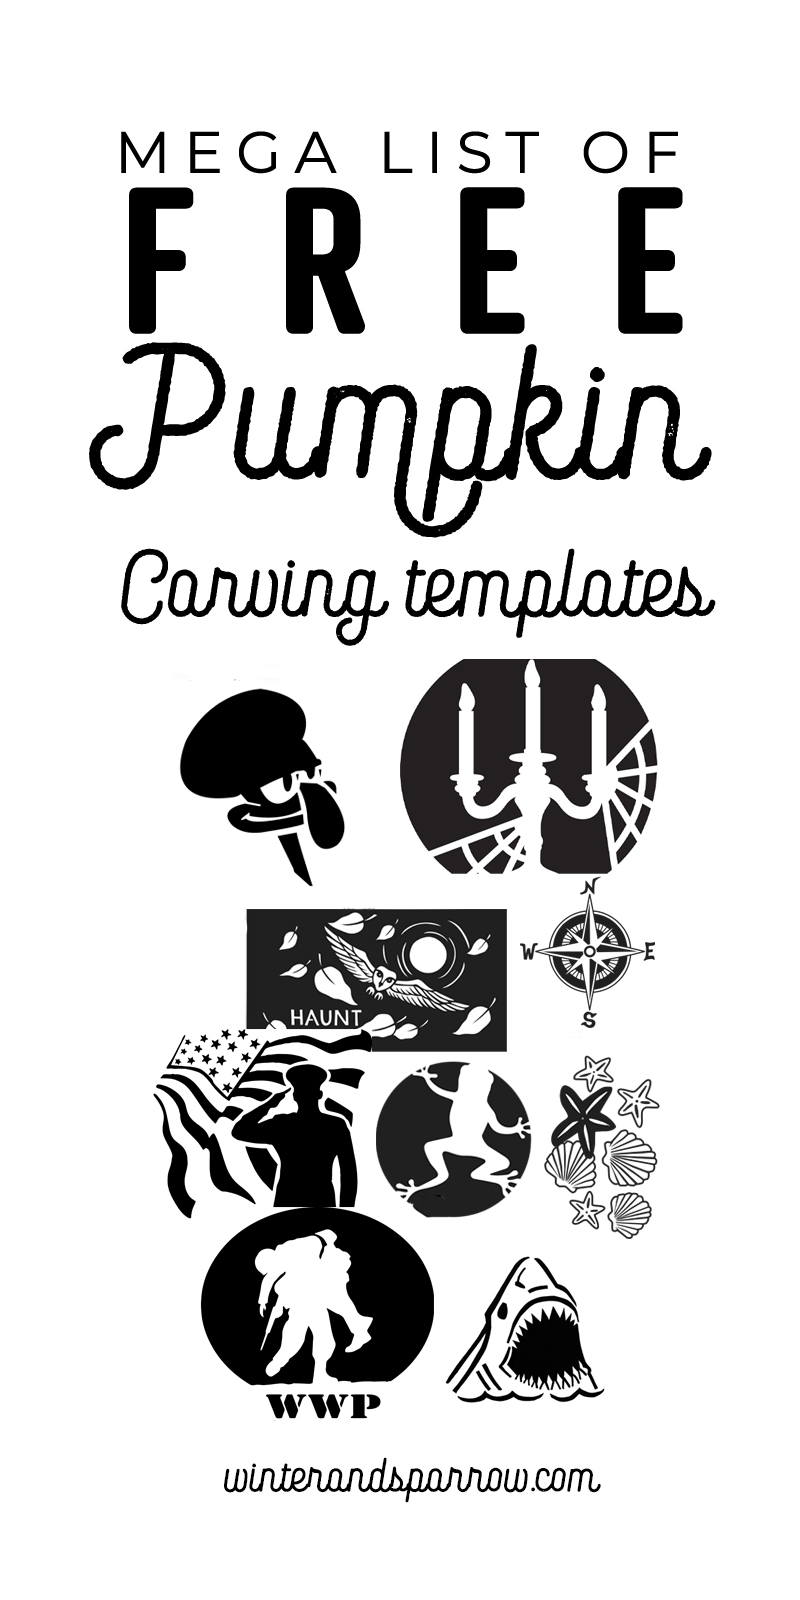 This is an image of Printable Pumpkin Pictures in traceable printable